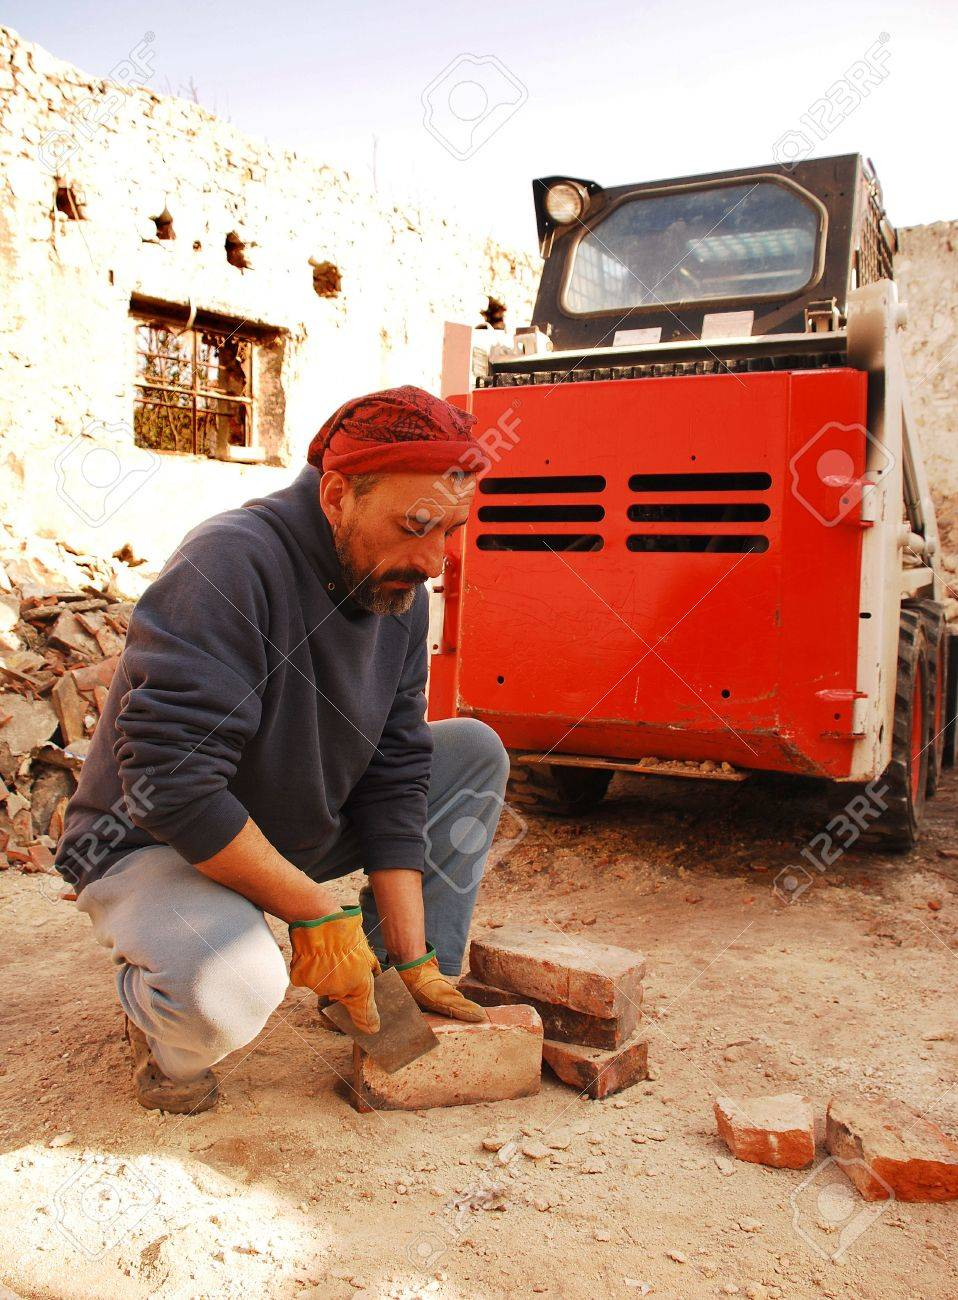 A man scrapes excess cement from antique bricks being salvaged for further architectural use from the demolition site of an old Italian farm building Stock Photo - 8186464